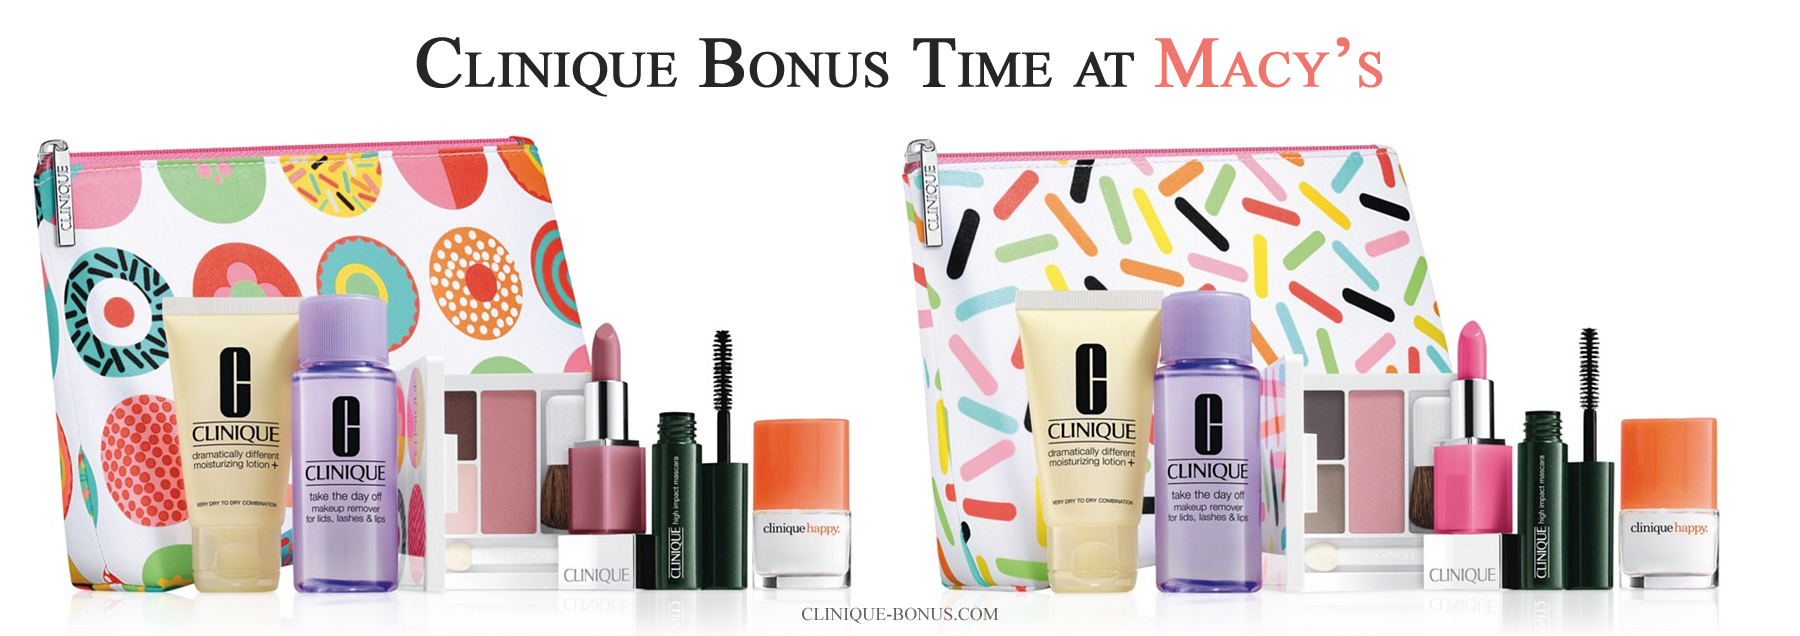 Pin by The girl with the pink basket on Clinique Bonus